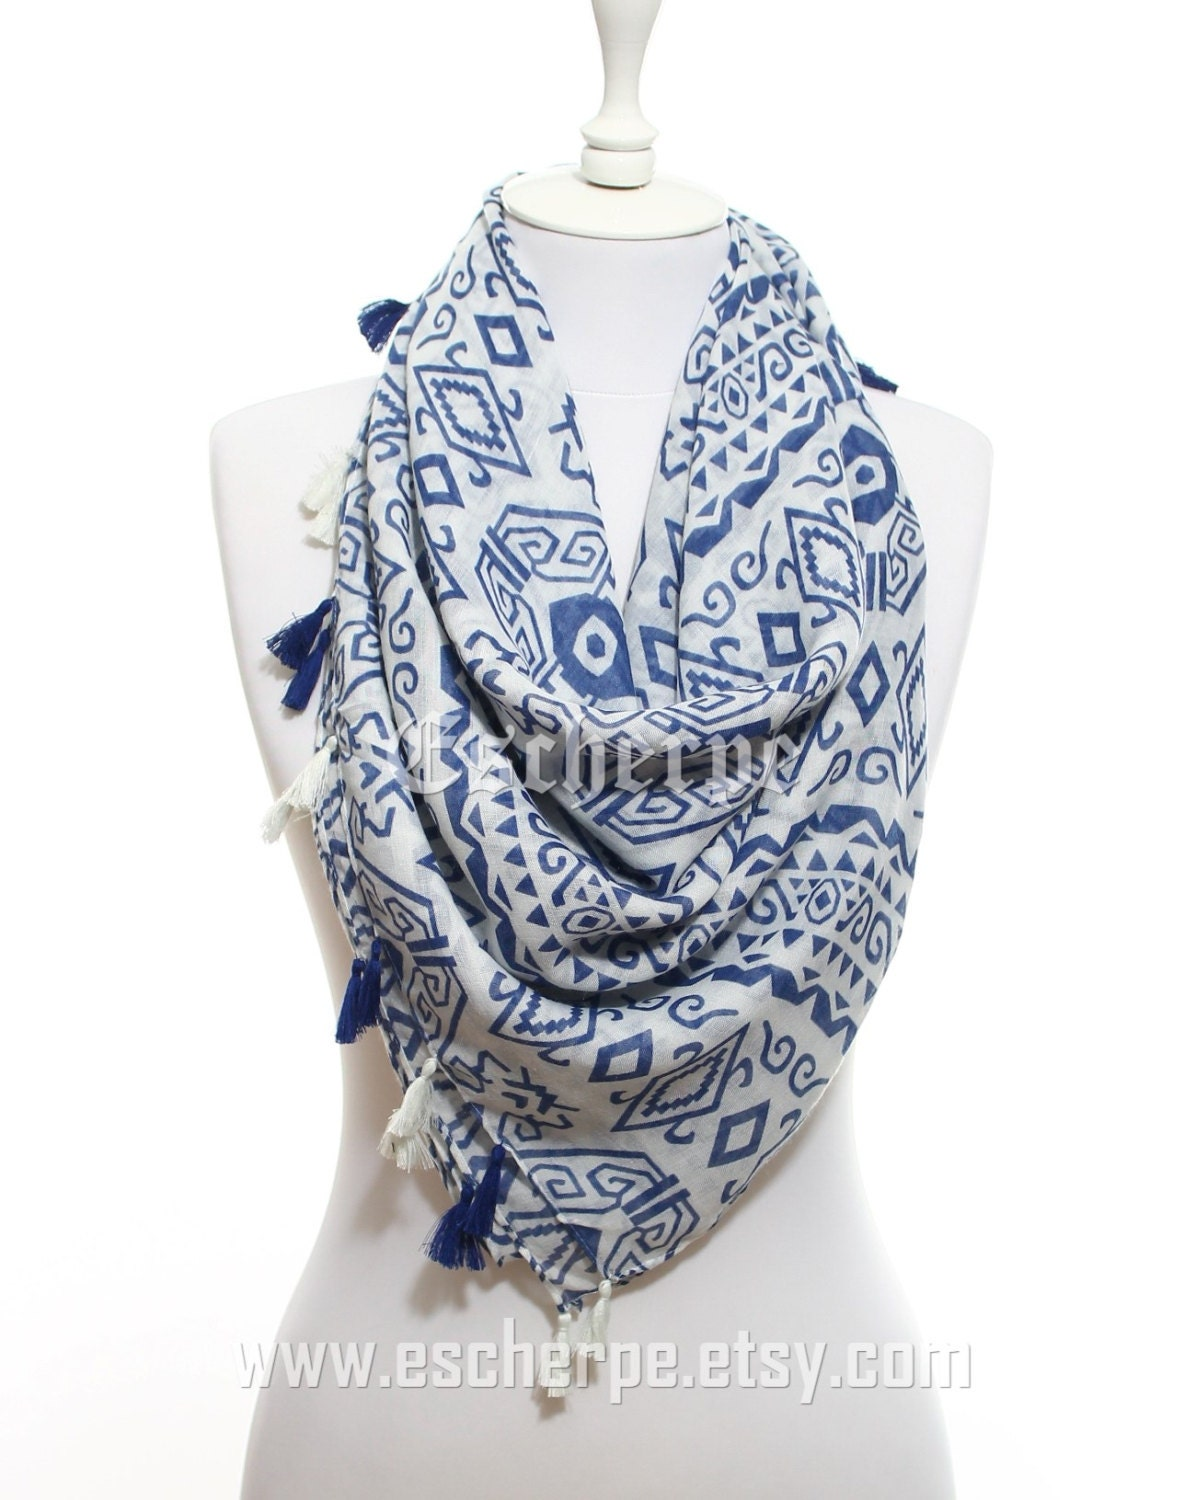 Aztec Scarf Navy White Tribal Scarf So Soft Lightweight Spring Summer Women Fashion Accessories Spring Celebrations Trend Gift Ideas For Her